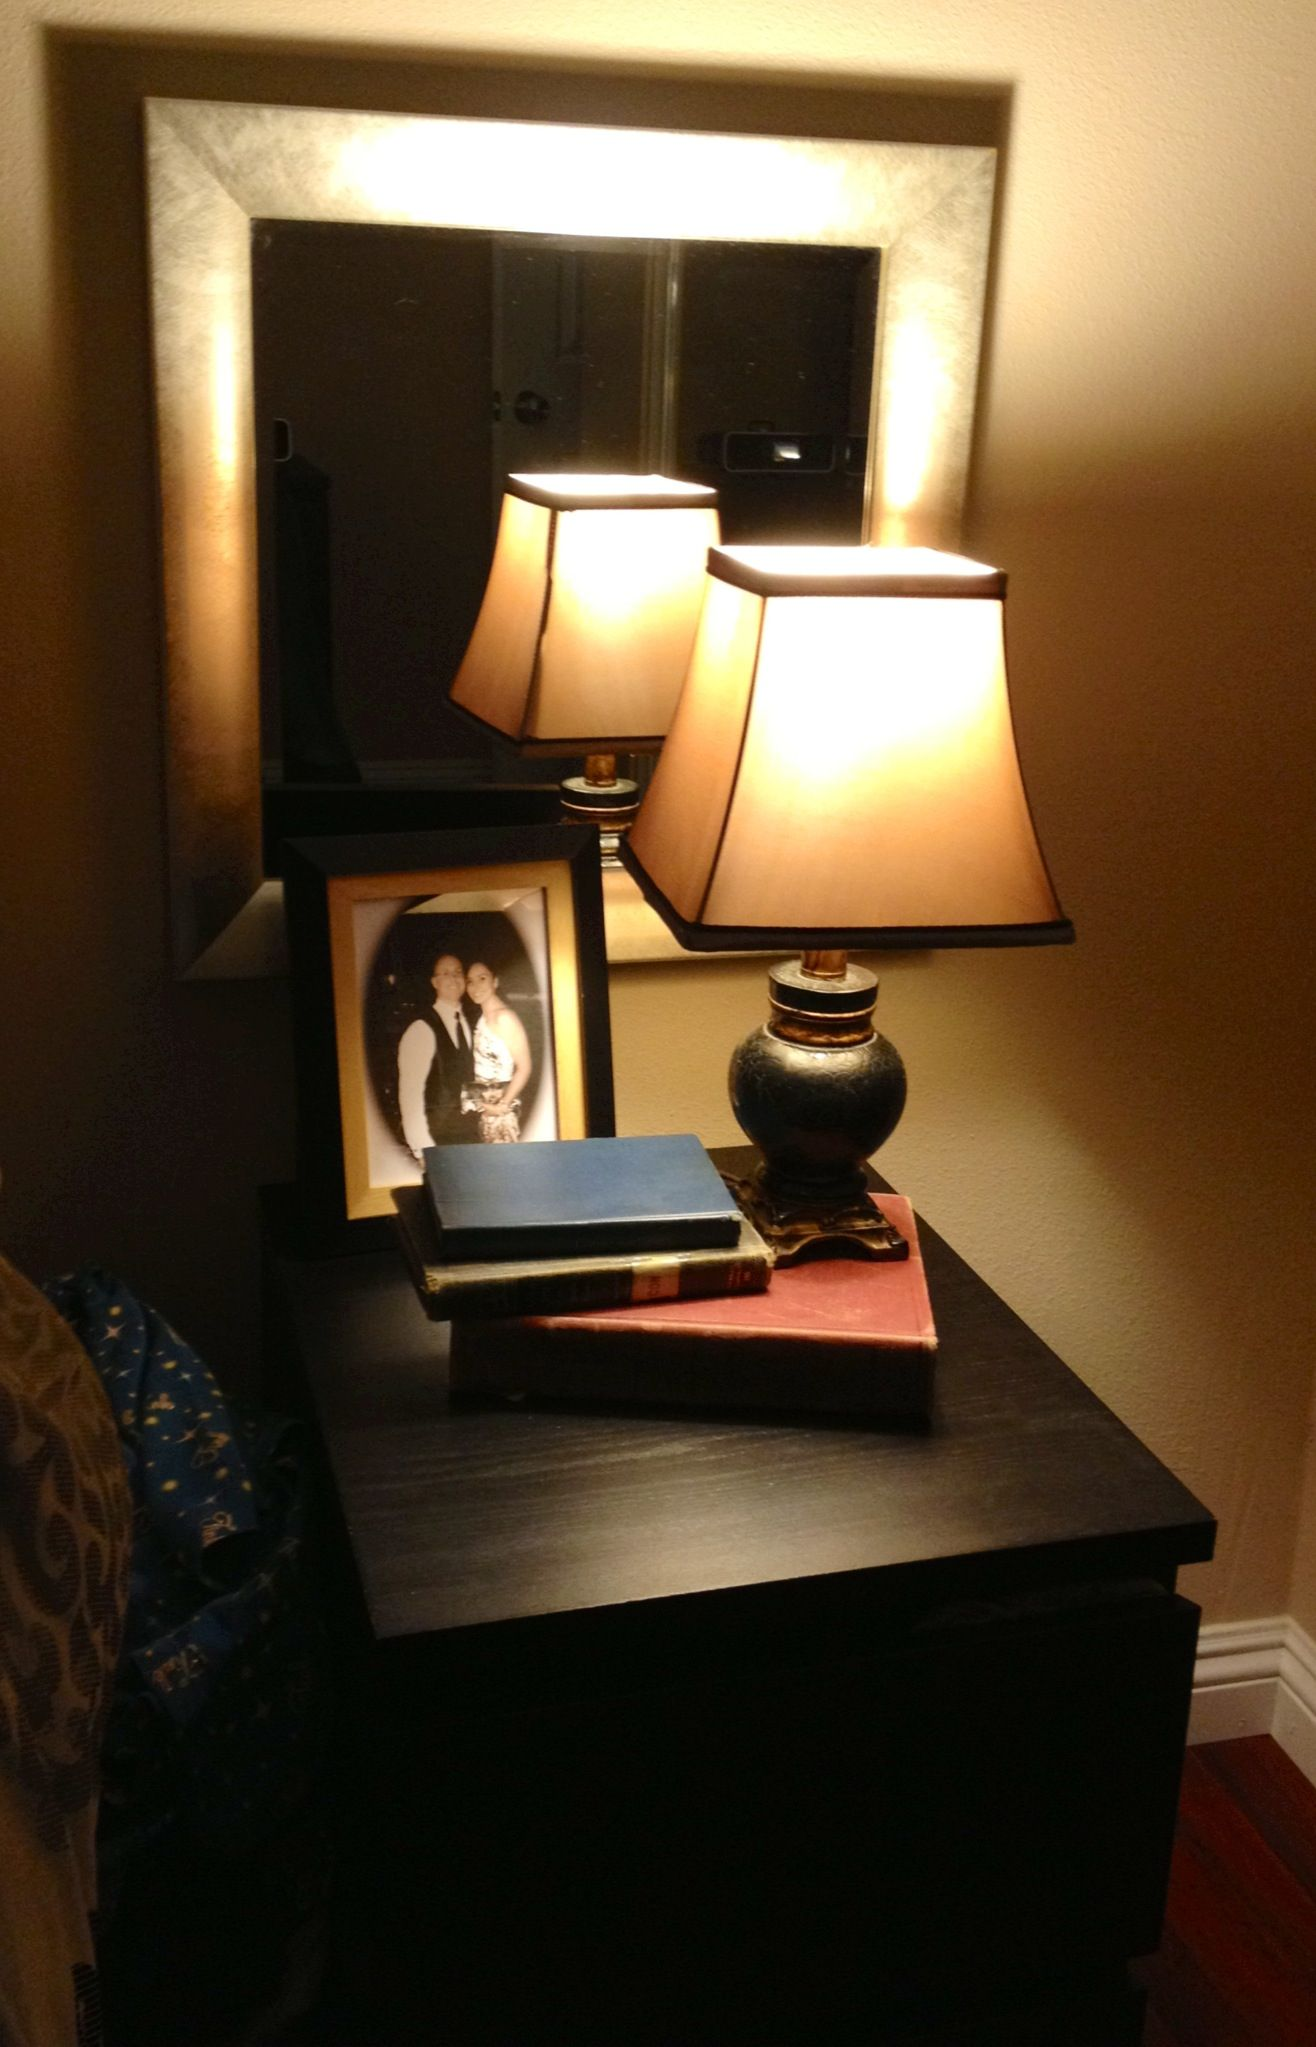 Mirror above night stands and lamps in front. Makes the